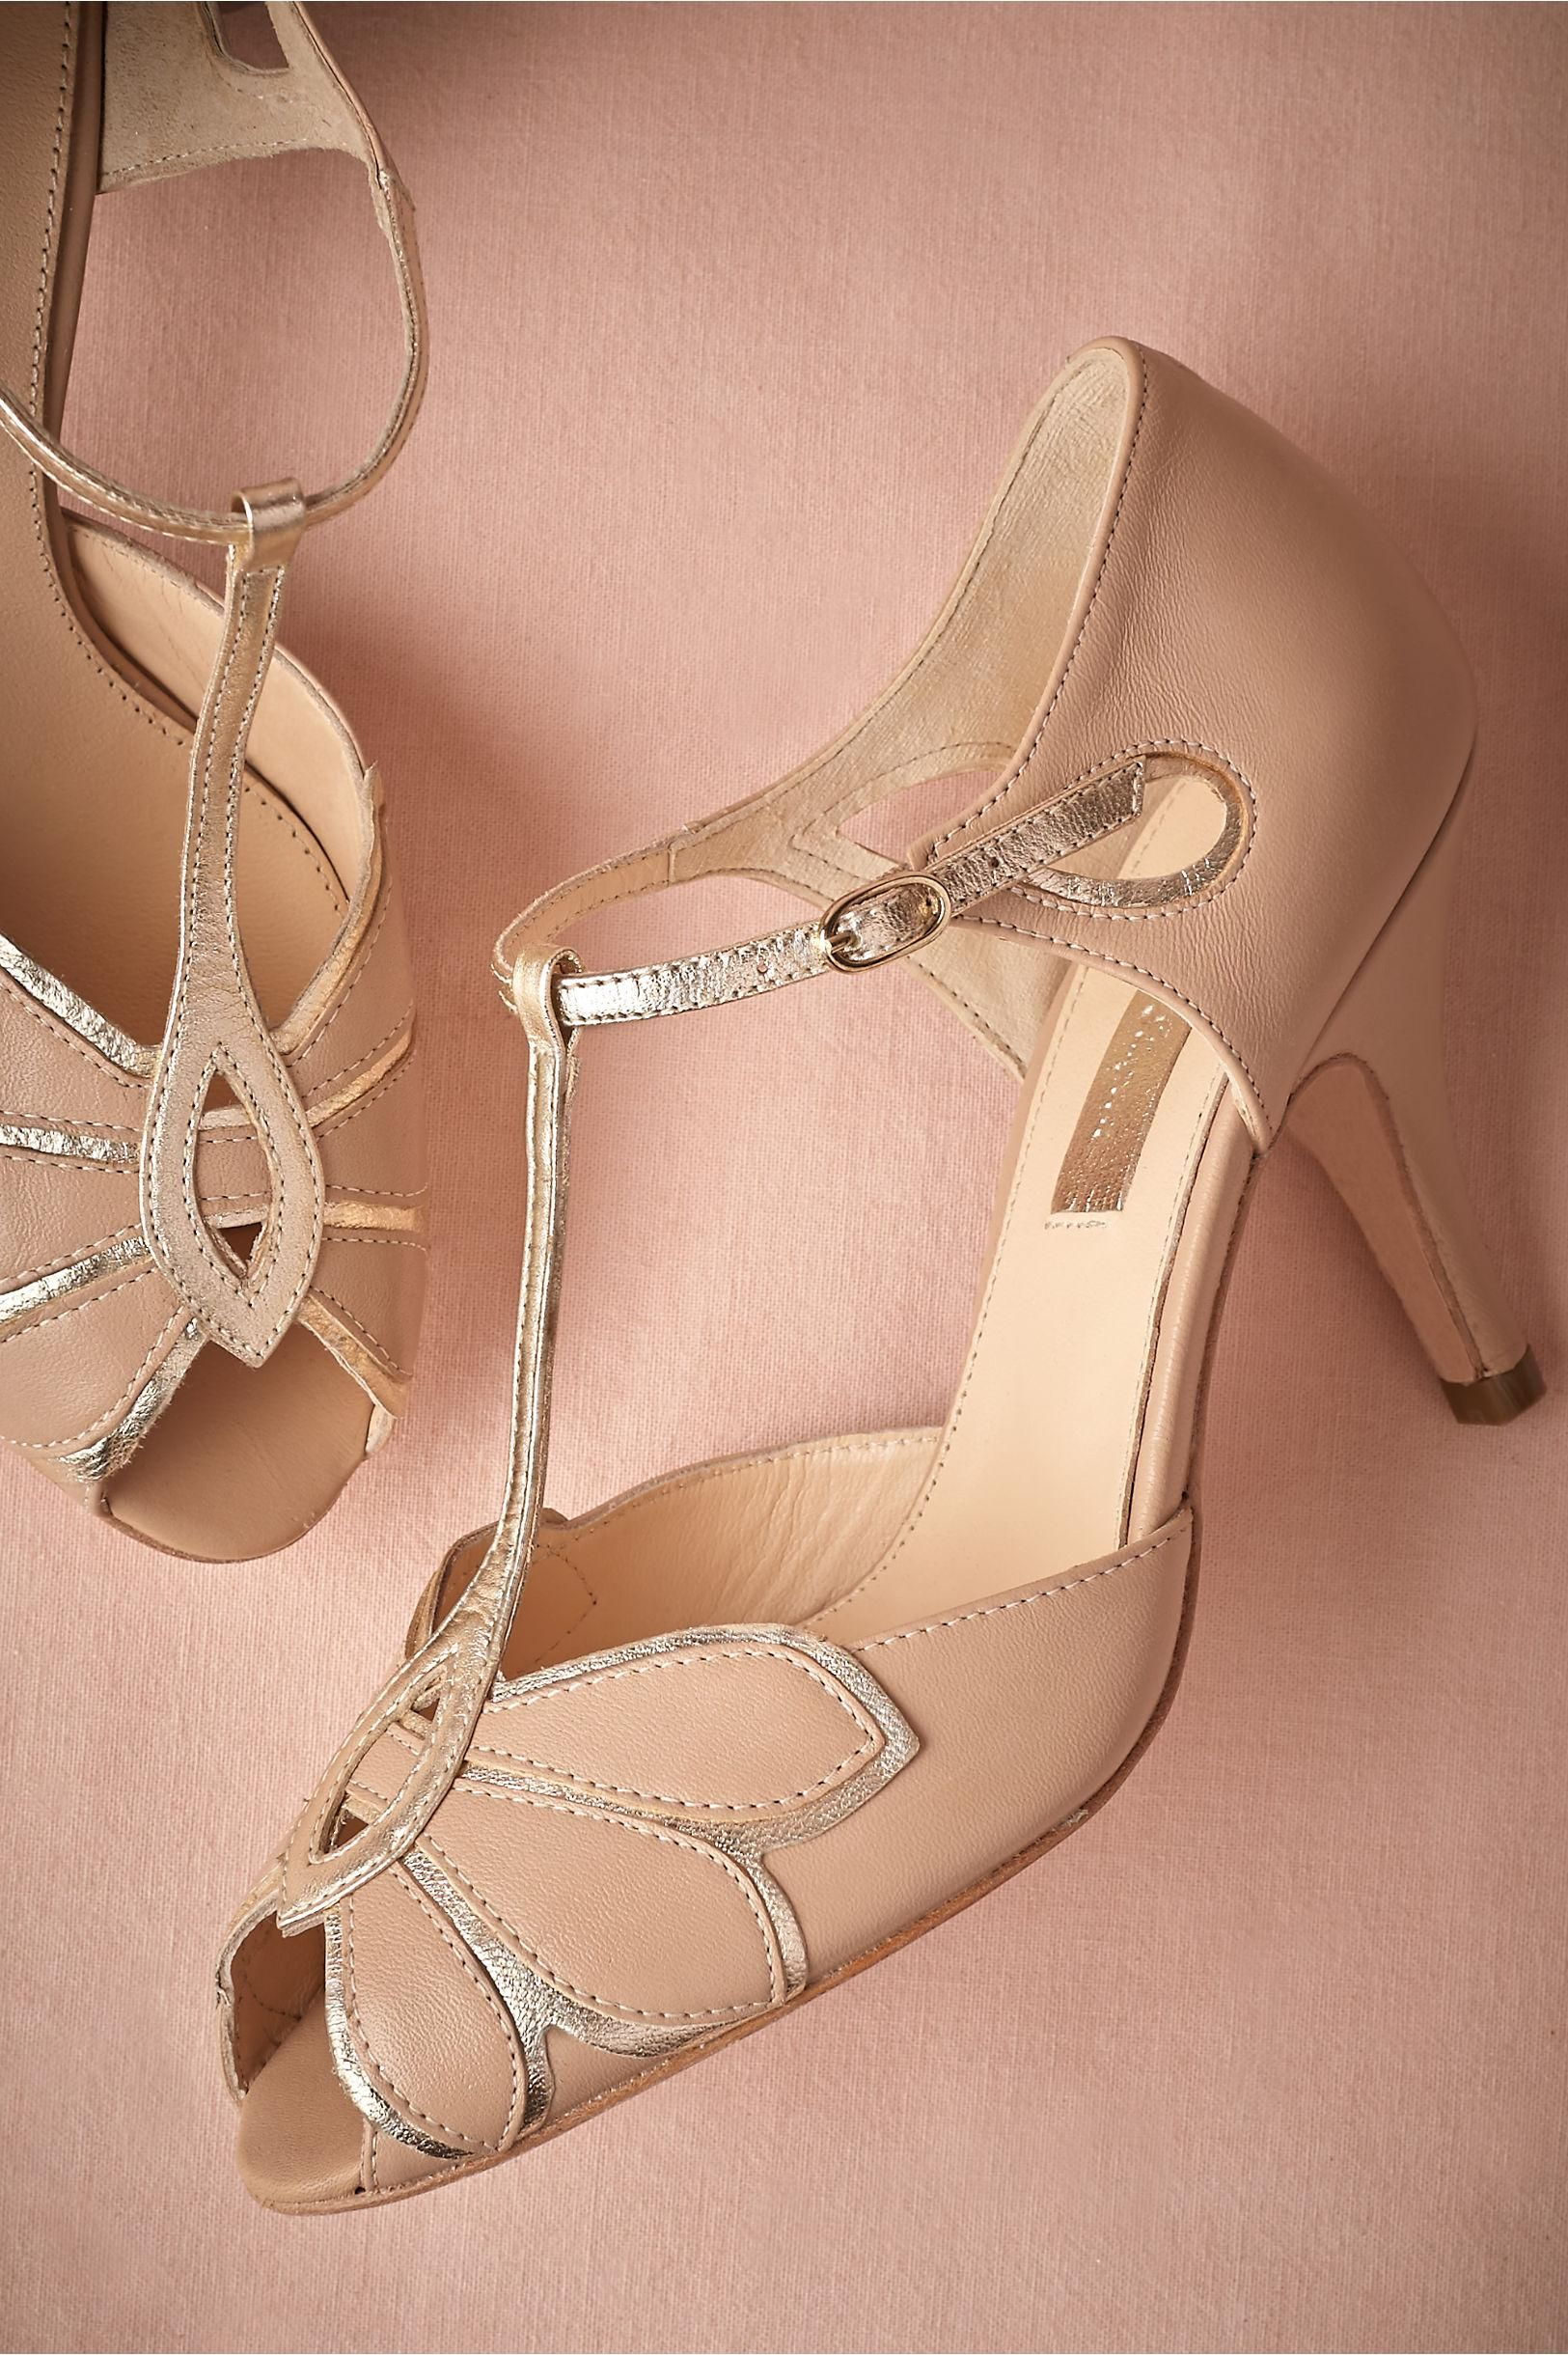 Product Mimosa T Straps In Blush From Bhldn